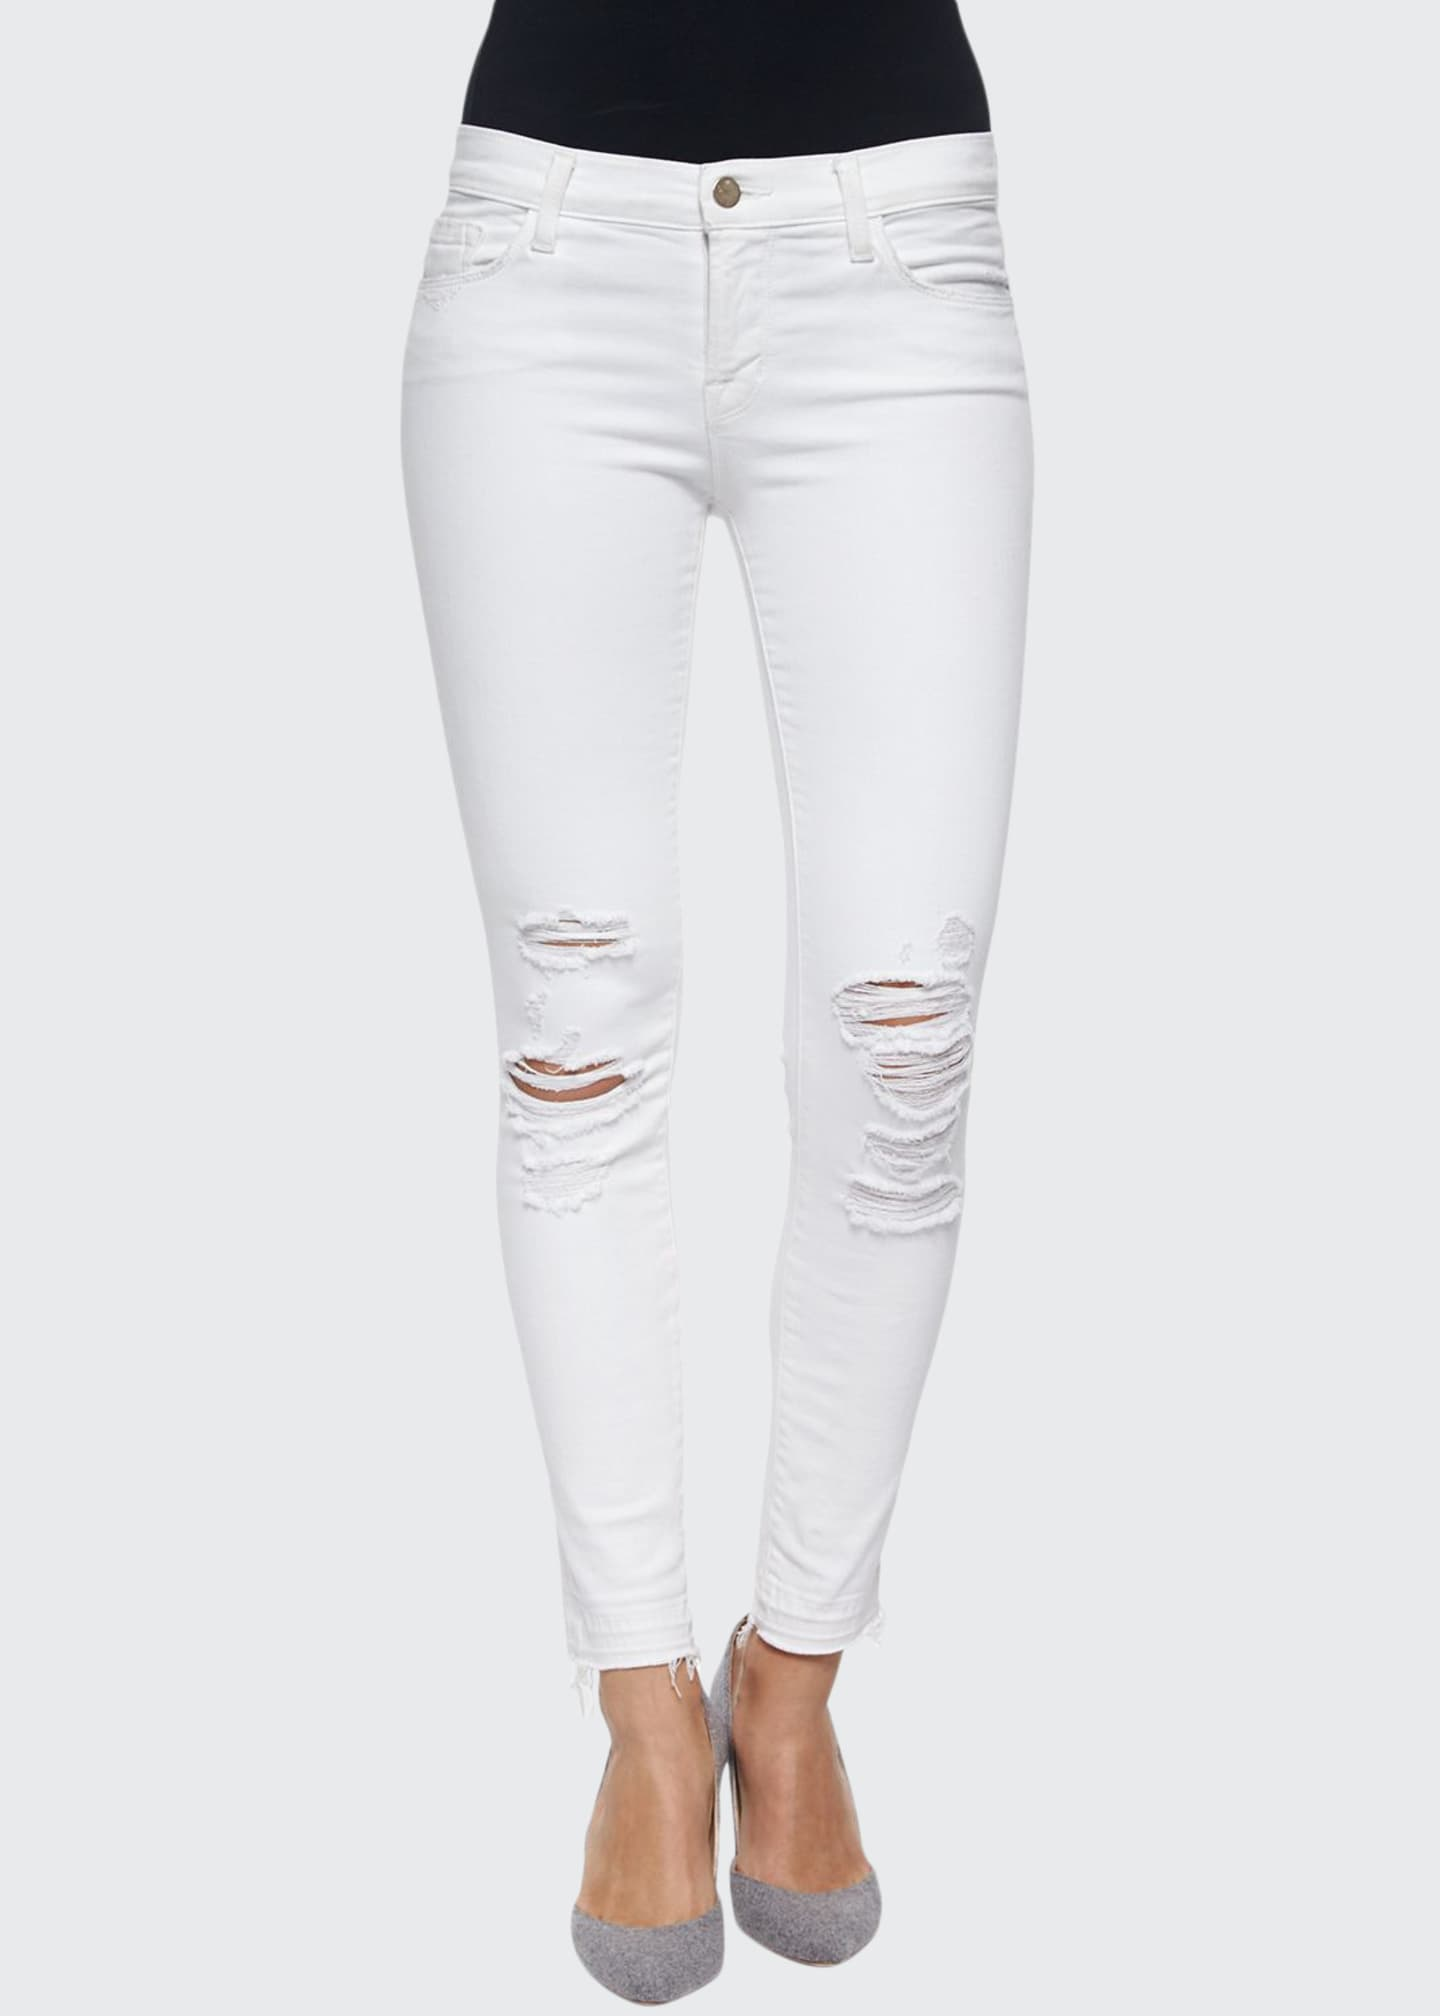 J Brand Low-Rise Skinny Crop Jeans, Demented, White